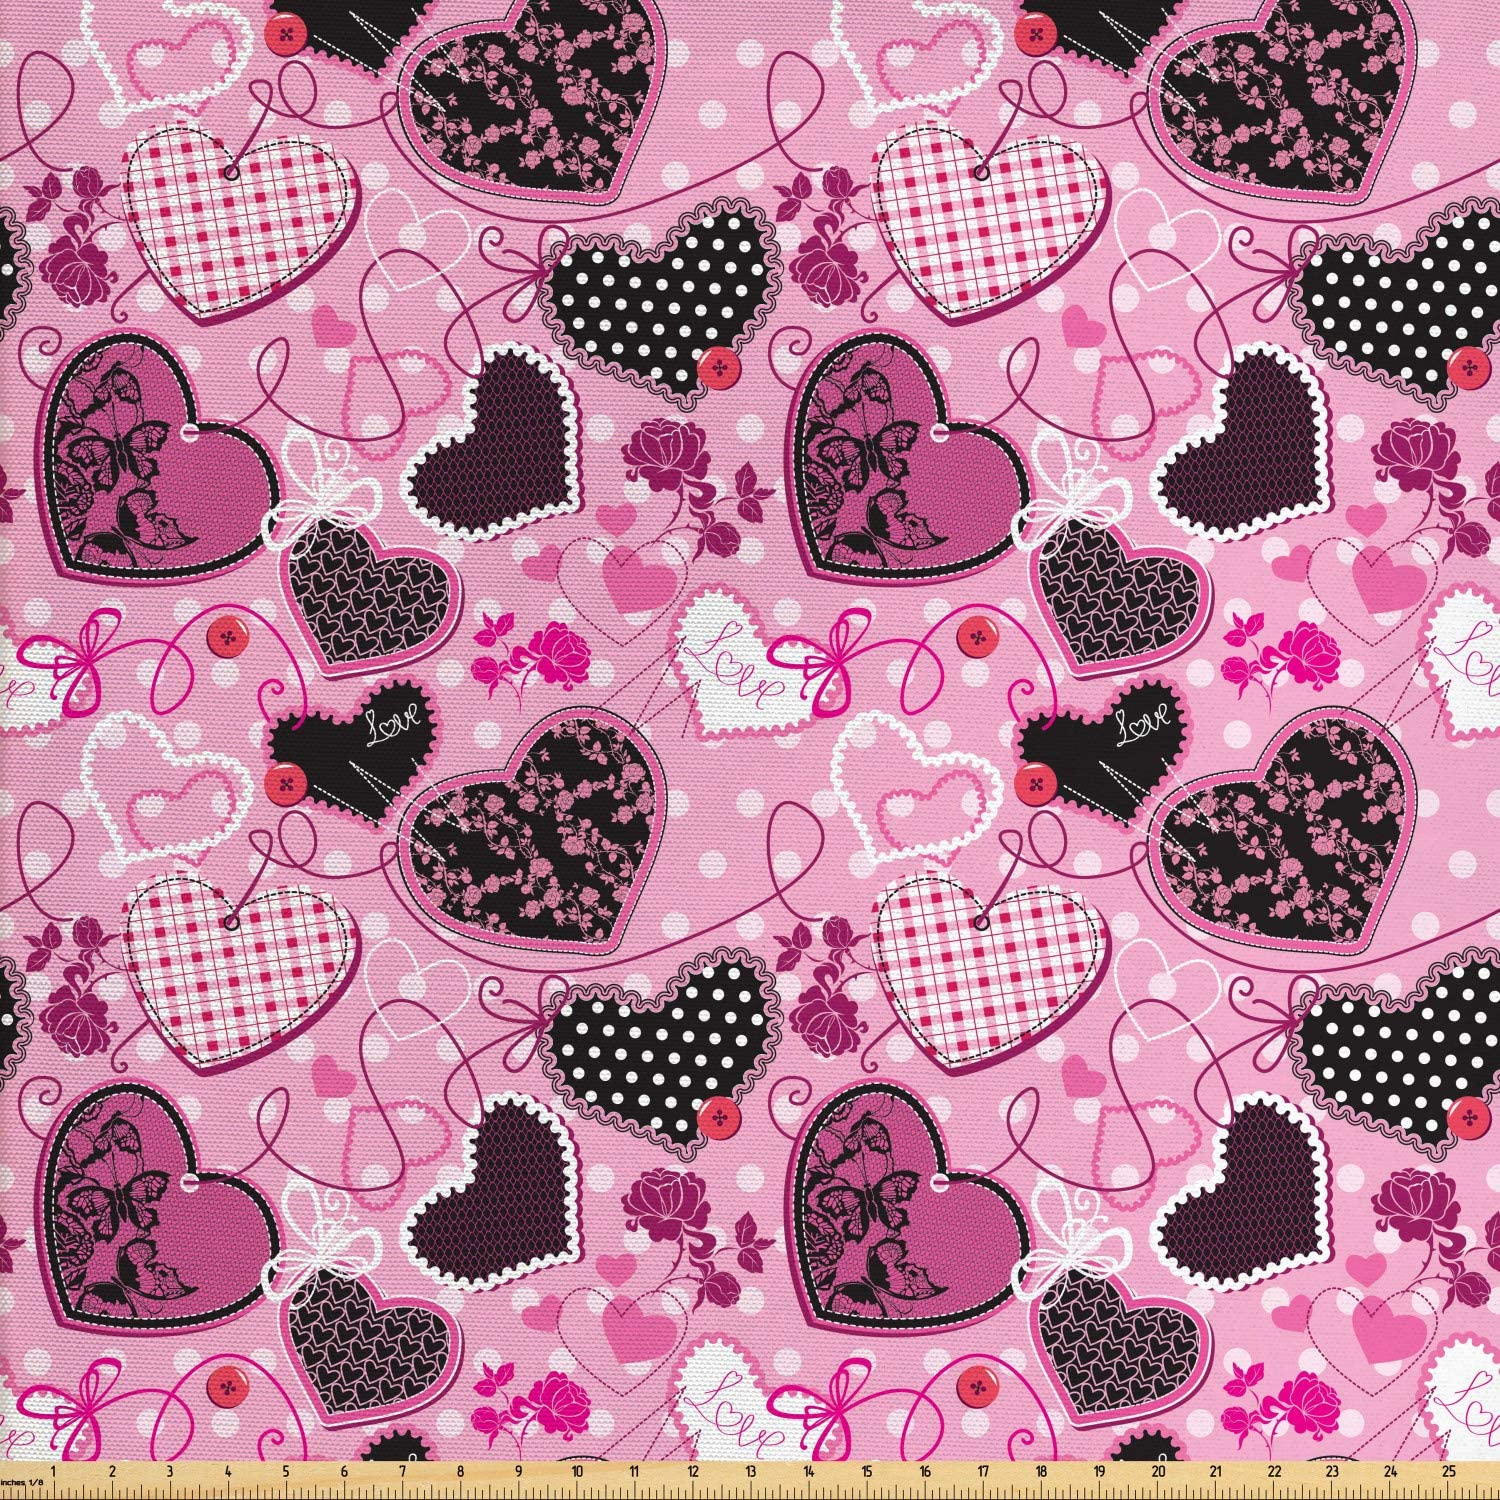 Lunarable Hearts Fabric by The Yard, Sewing Themed Love with Polka Dots Valentine's Day Inspired Image, Decorative Fabric for Upholstery and Home Accents, 3 Yards, White and Black